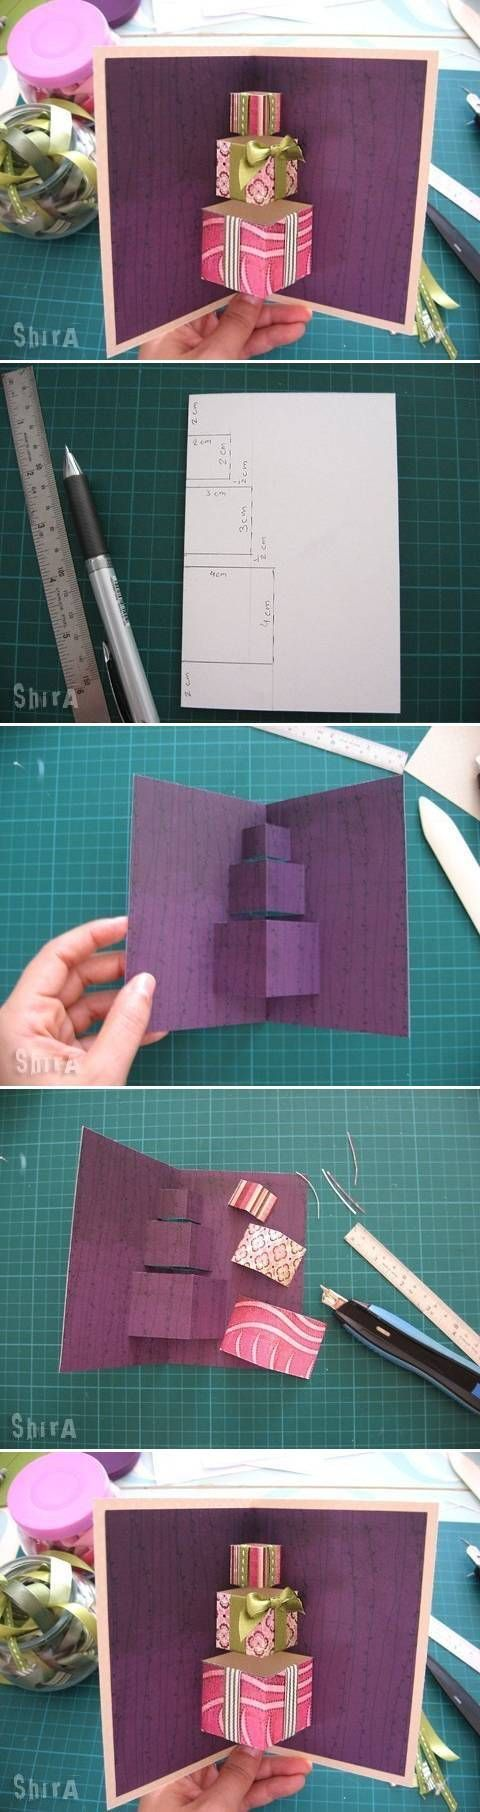 DIY easy pop-up card